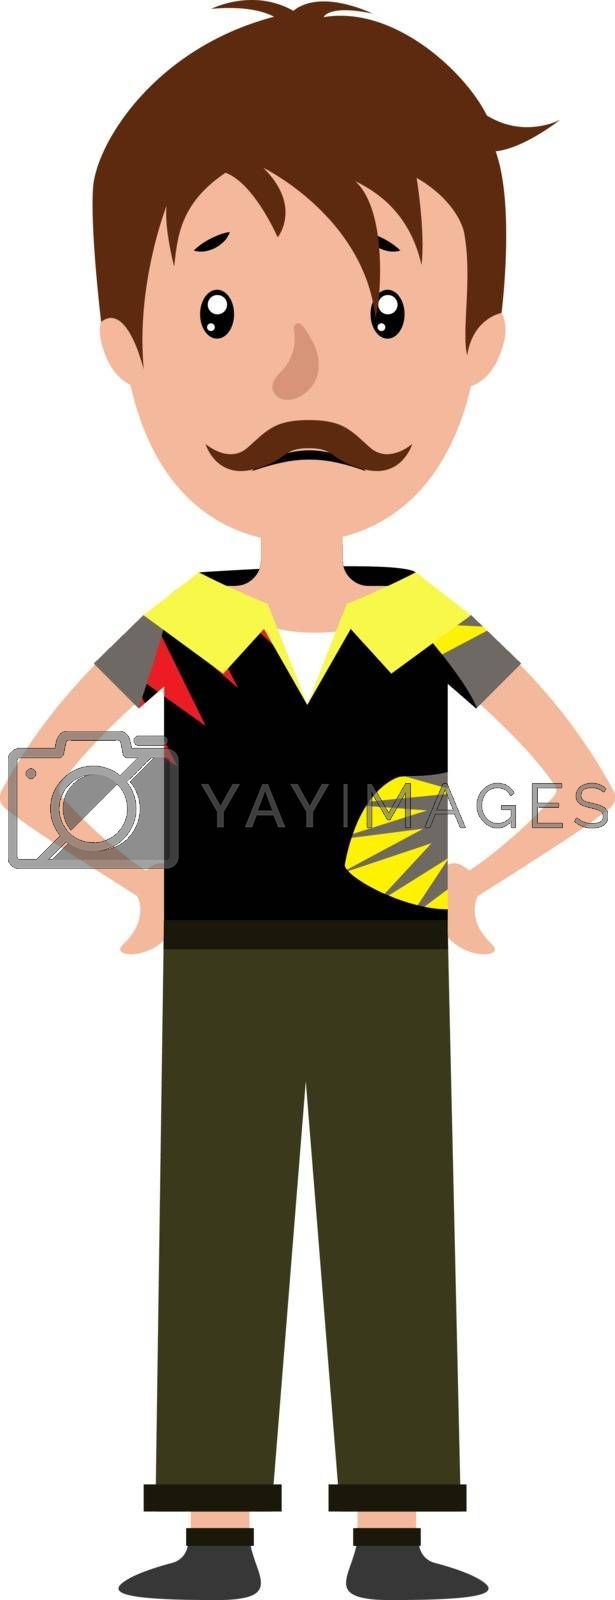 Royalty free image of Cartoon man looking worried illustration vector on white backgro by Morphart